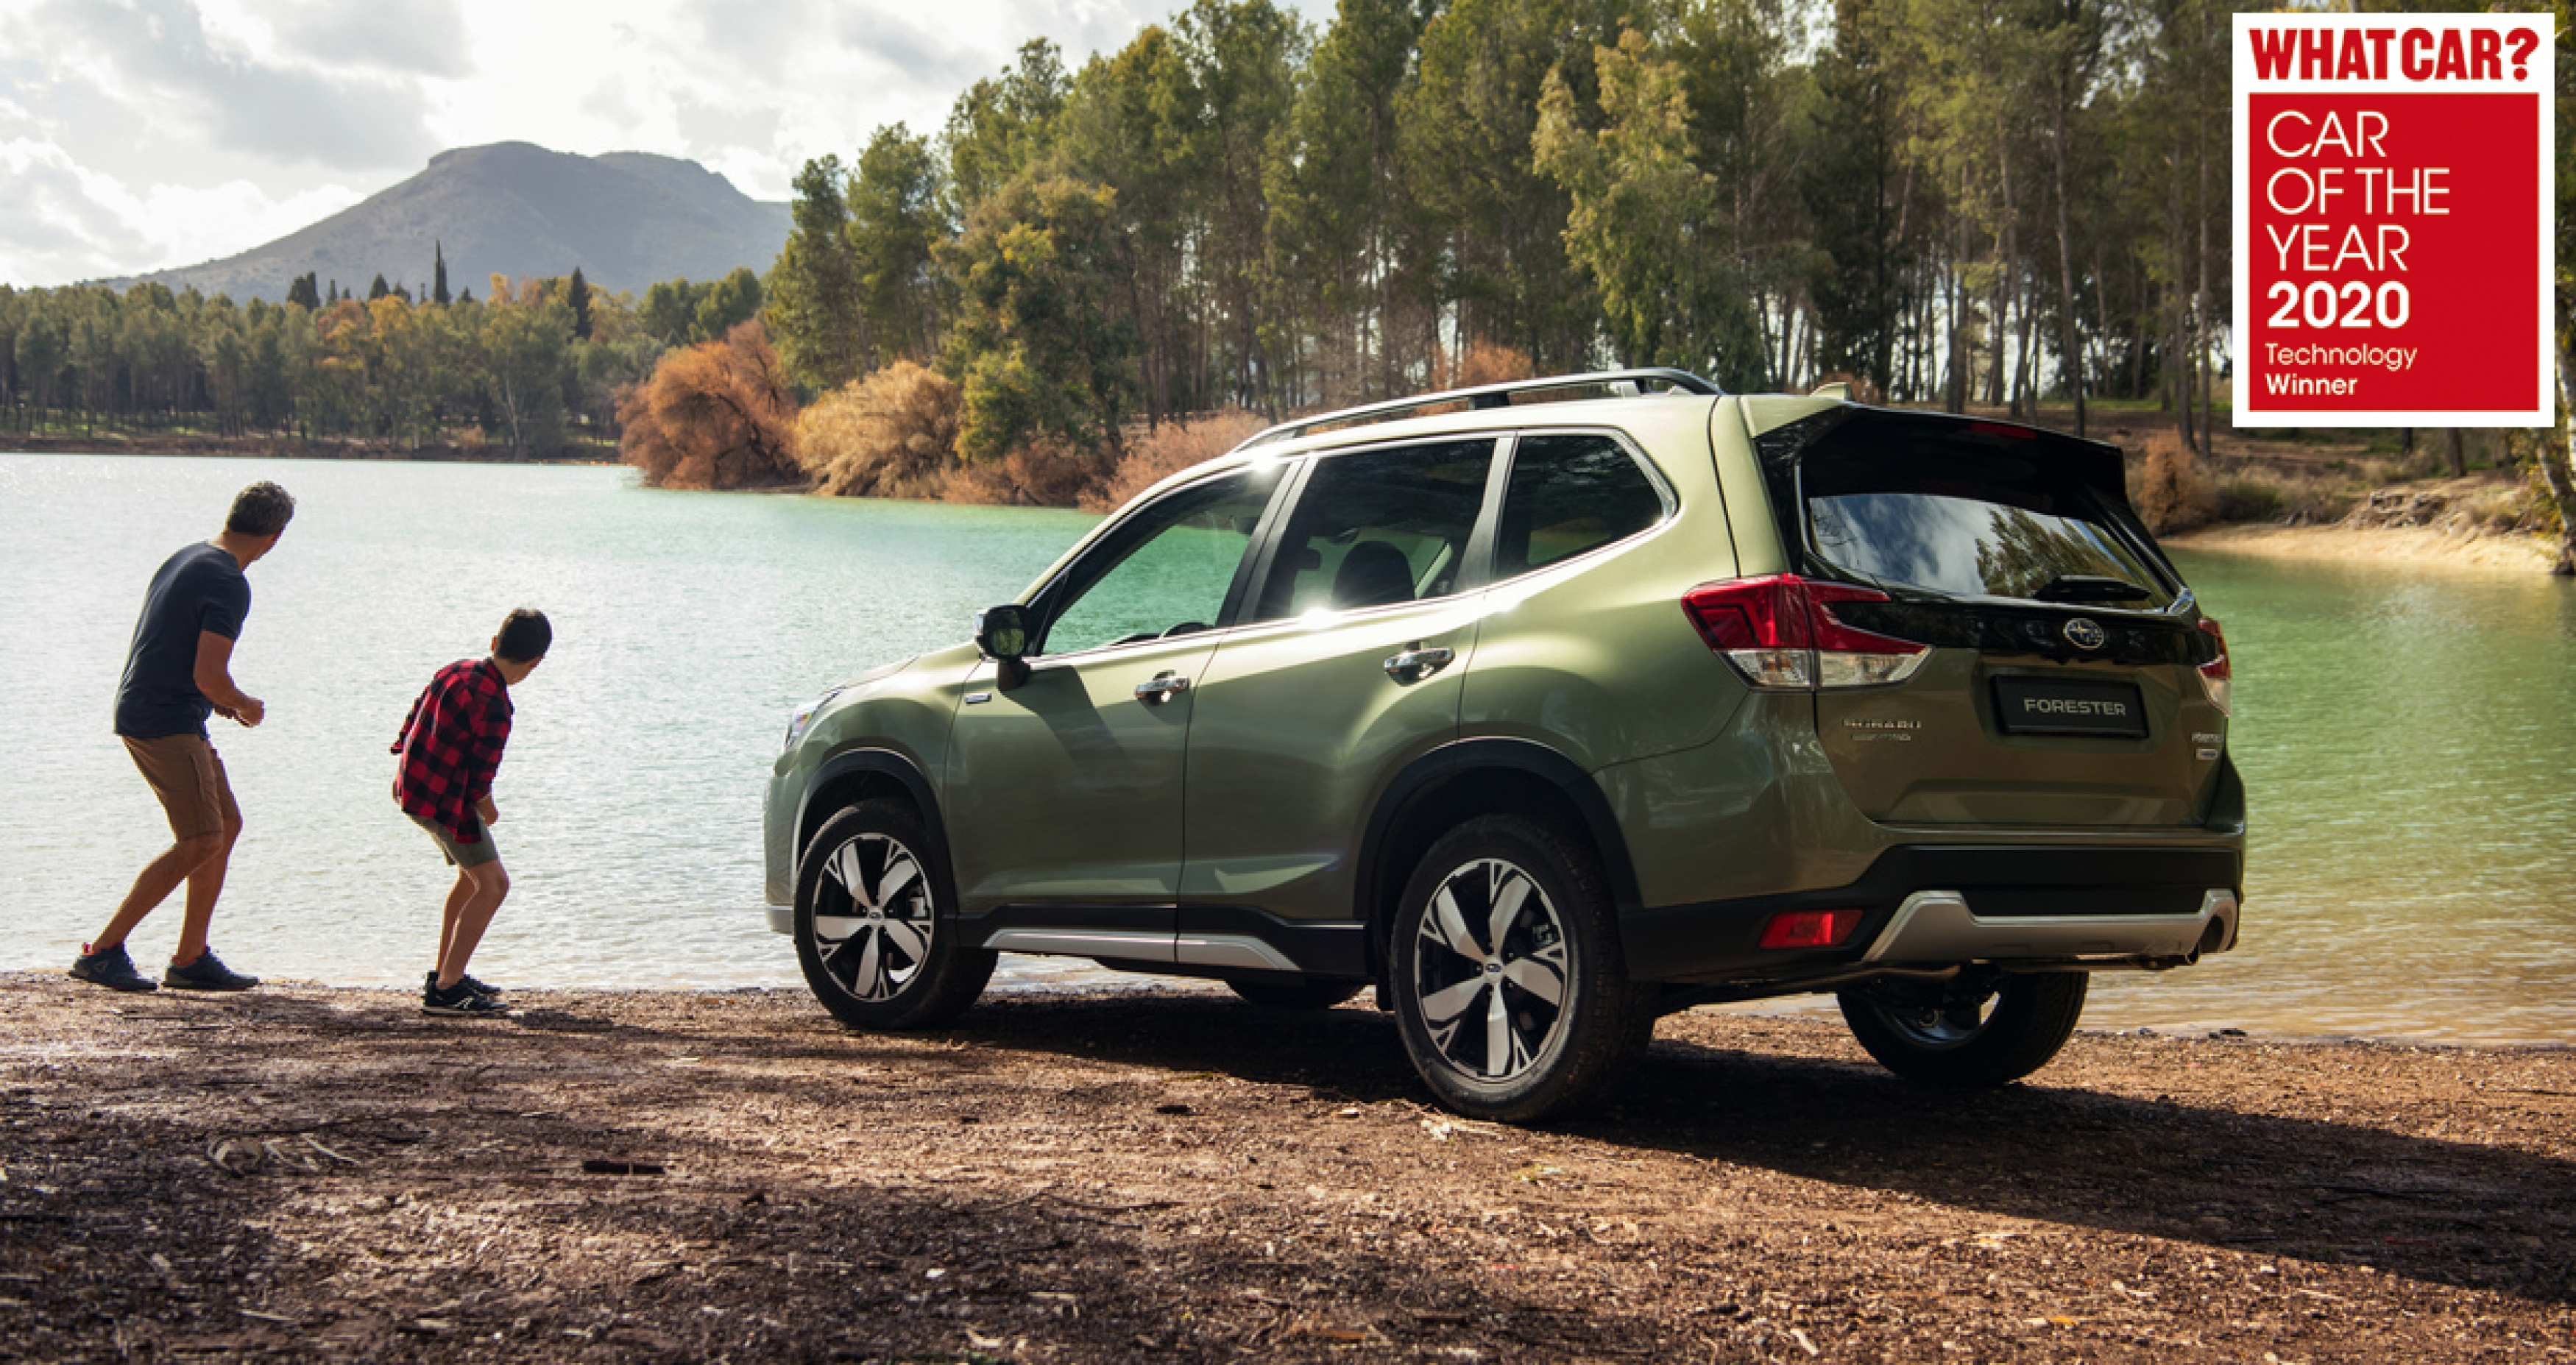 Forester e-BOXER - What Car? Car Of The Year 2020 Technology Award